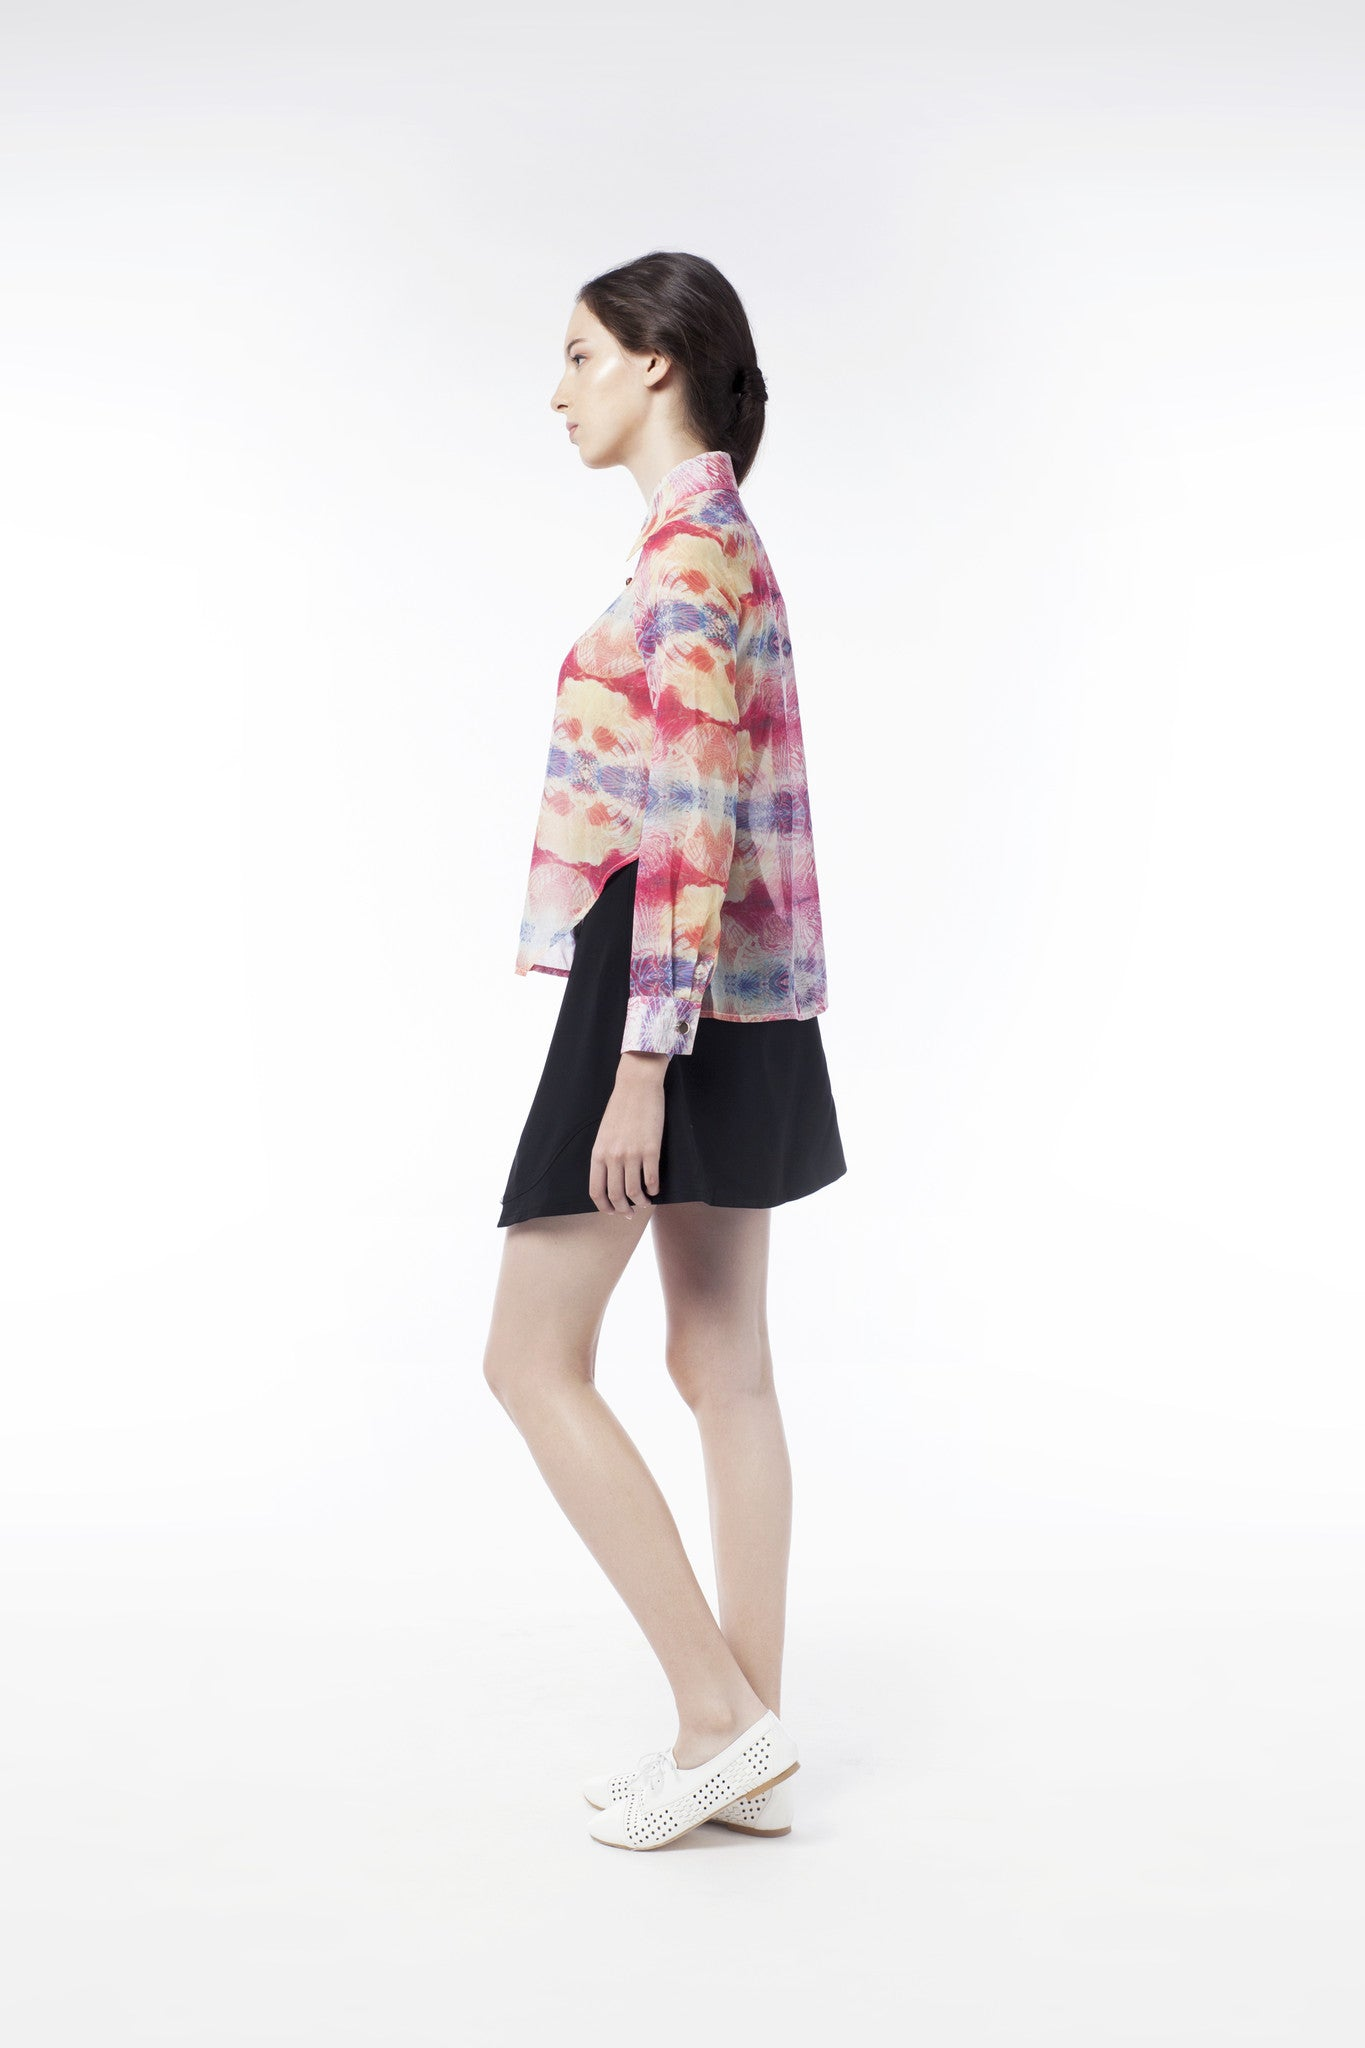 Kaleidoscopic Print Sheer Blouse - GlanceZ   - 2